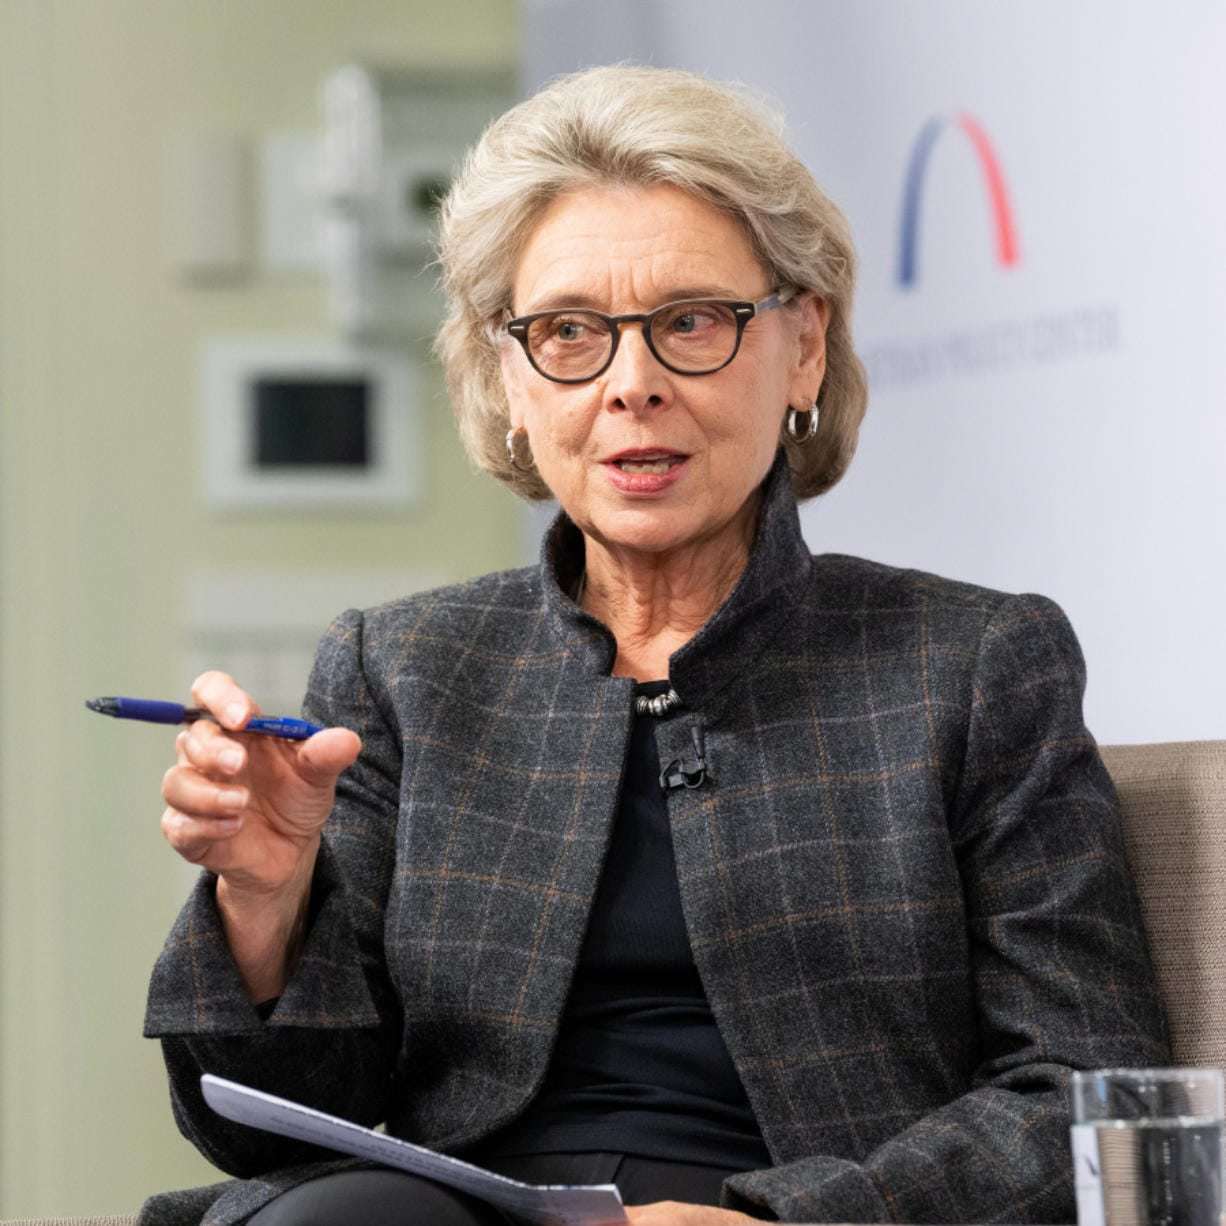 Christine Gregoire, former governor of Washington, speaks at the Bipartisan Policy Center in Washington, D.C., on April 17, 2018.